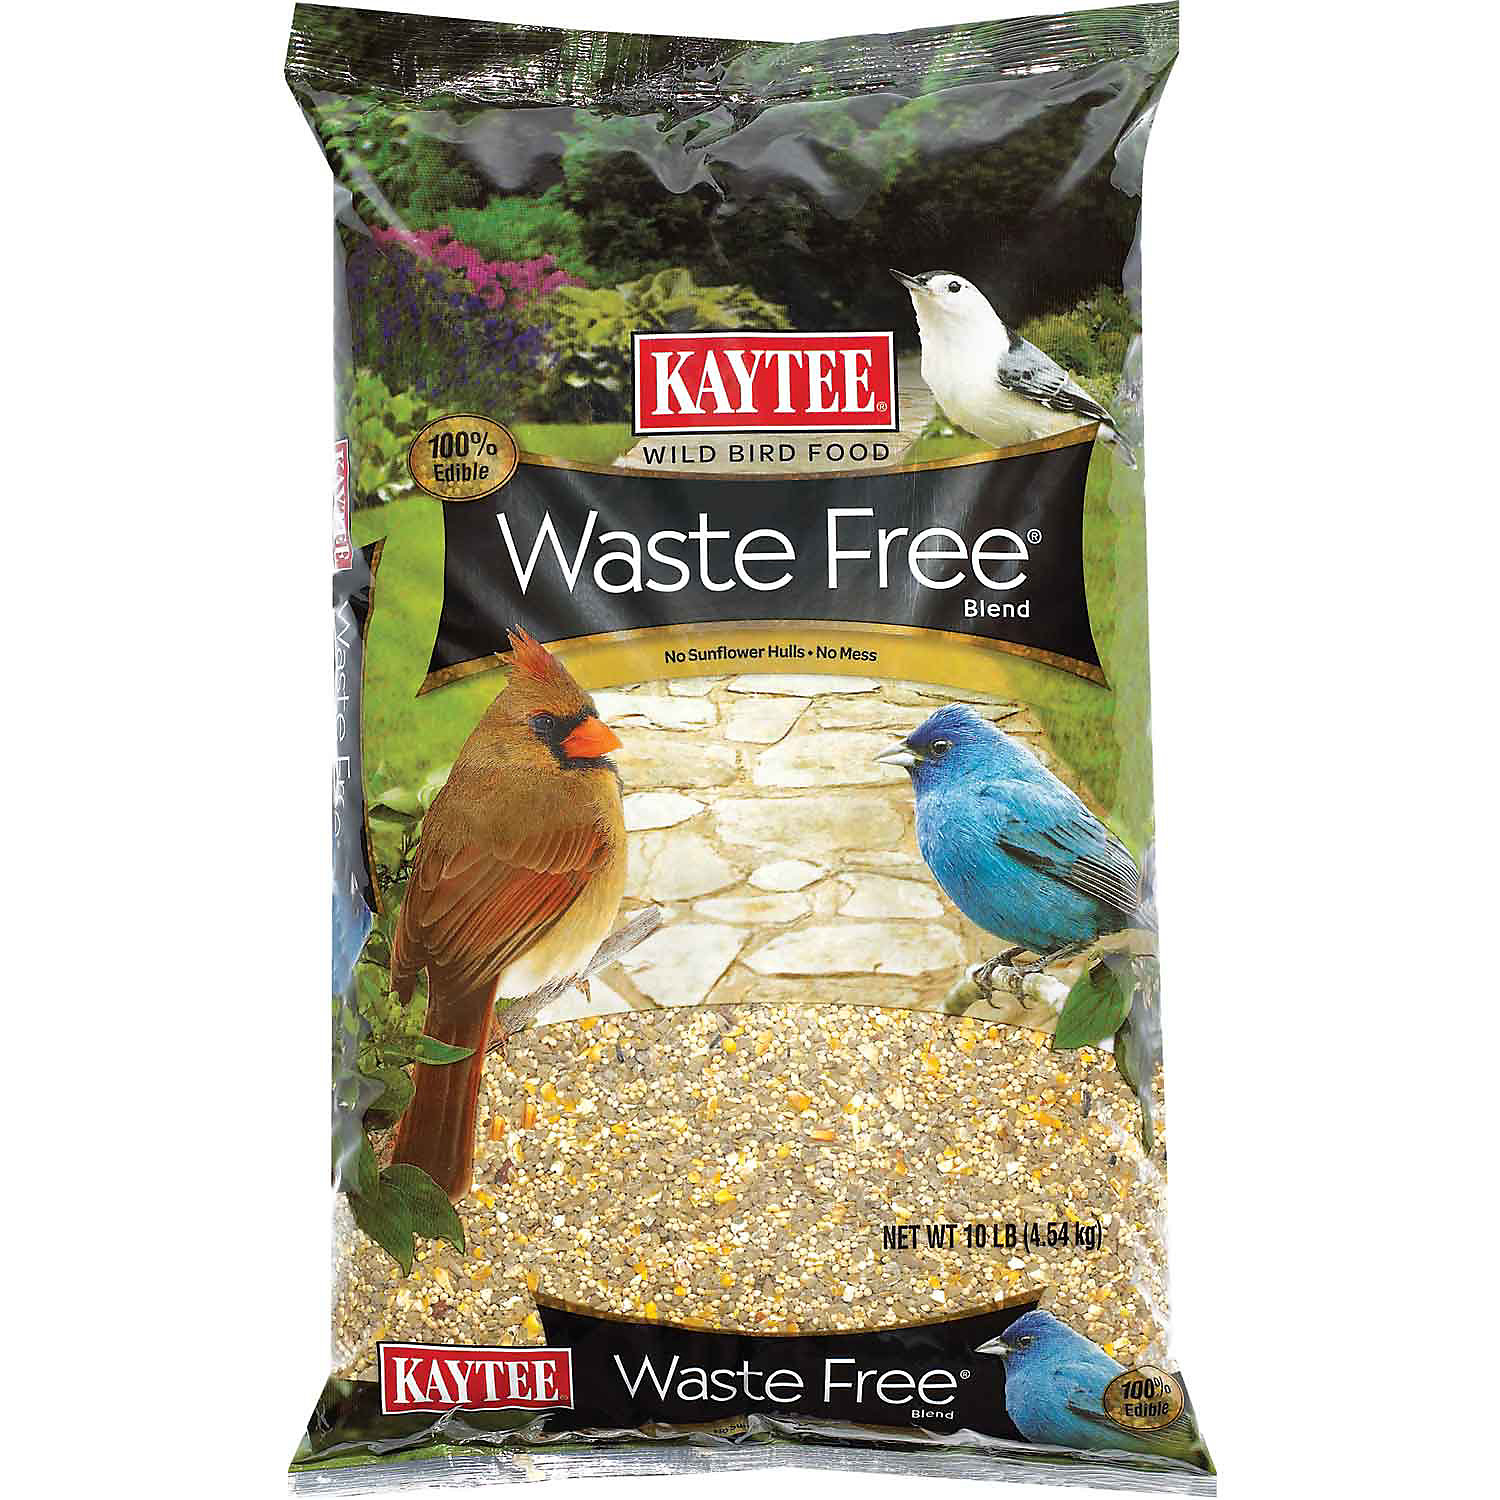 Kaytee Waste Free Wild Bird Food